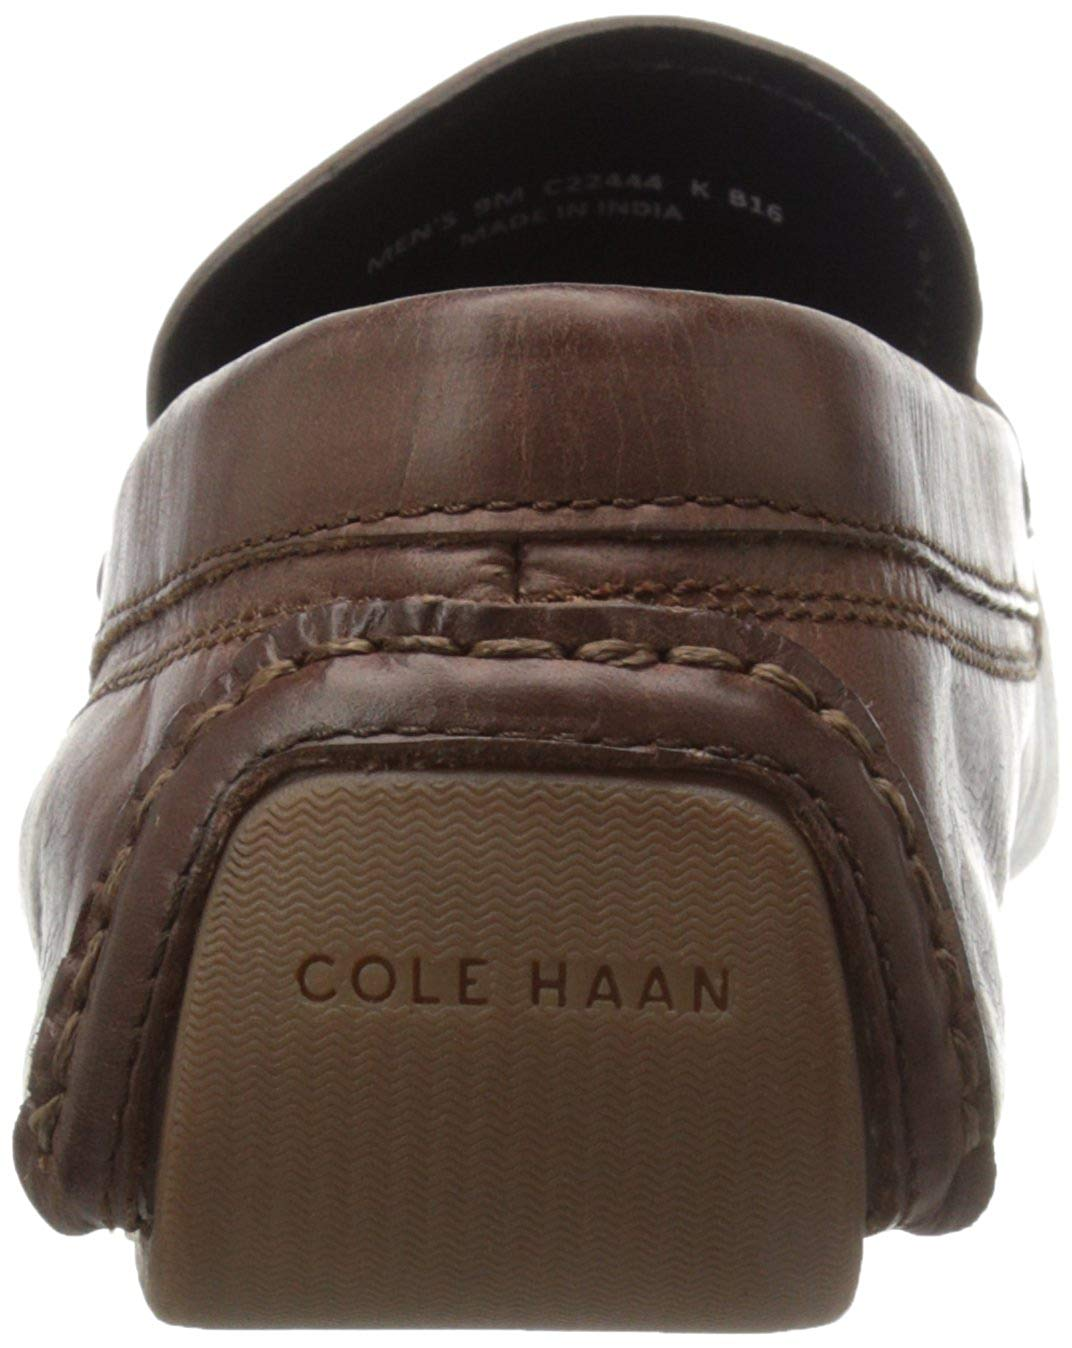 f8d1e6e1e57 Cole Haan Men s Kelson Penny Penny Loafer